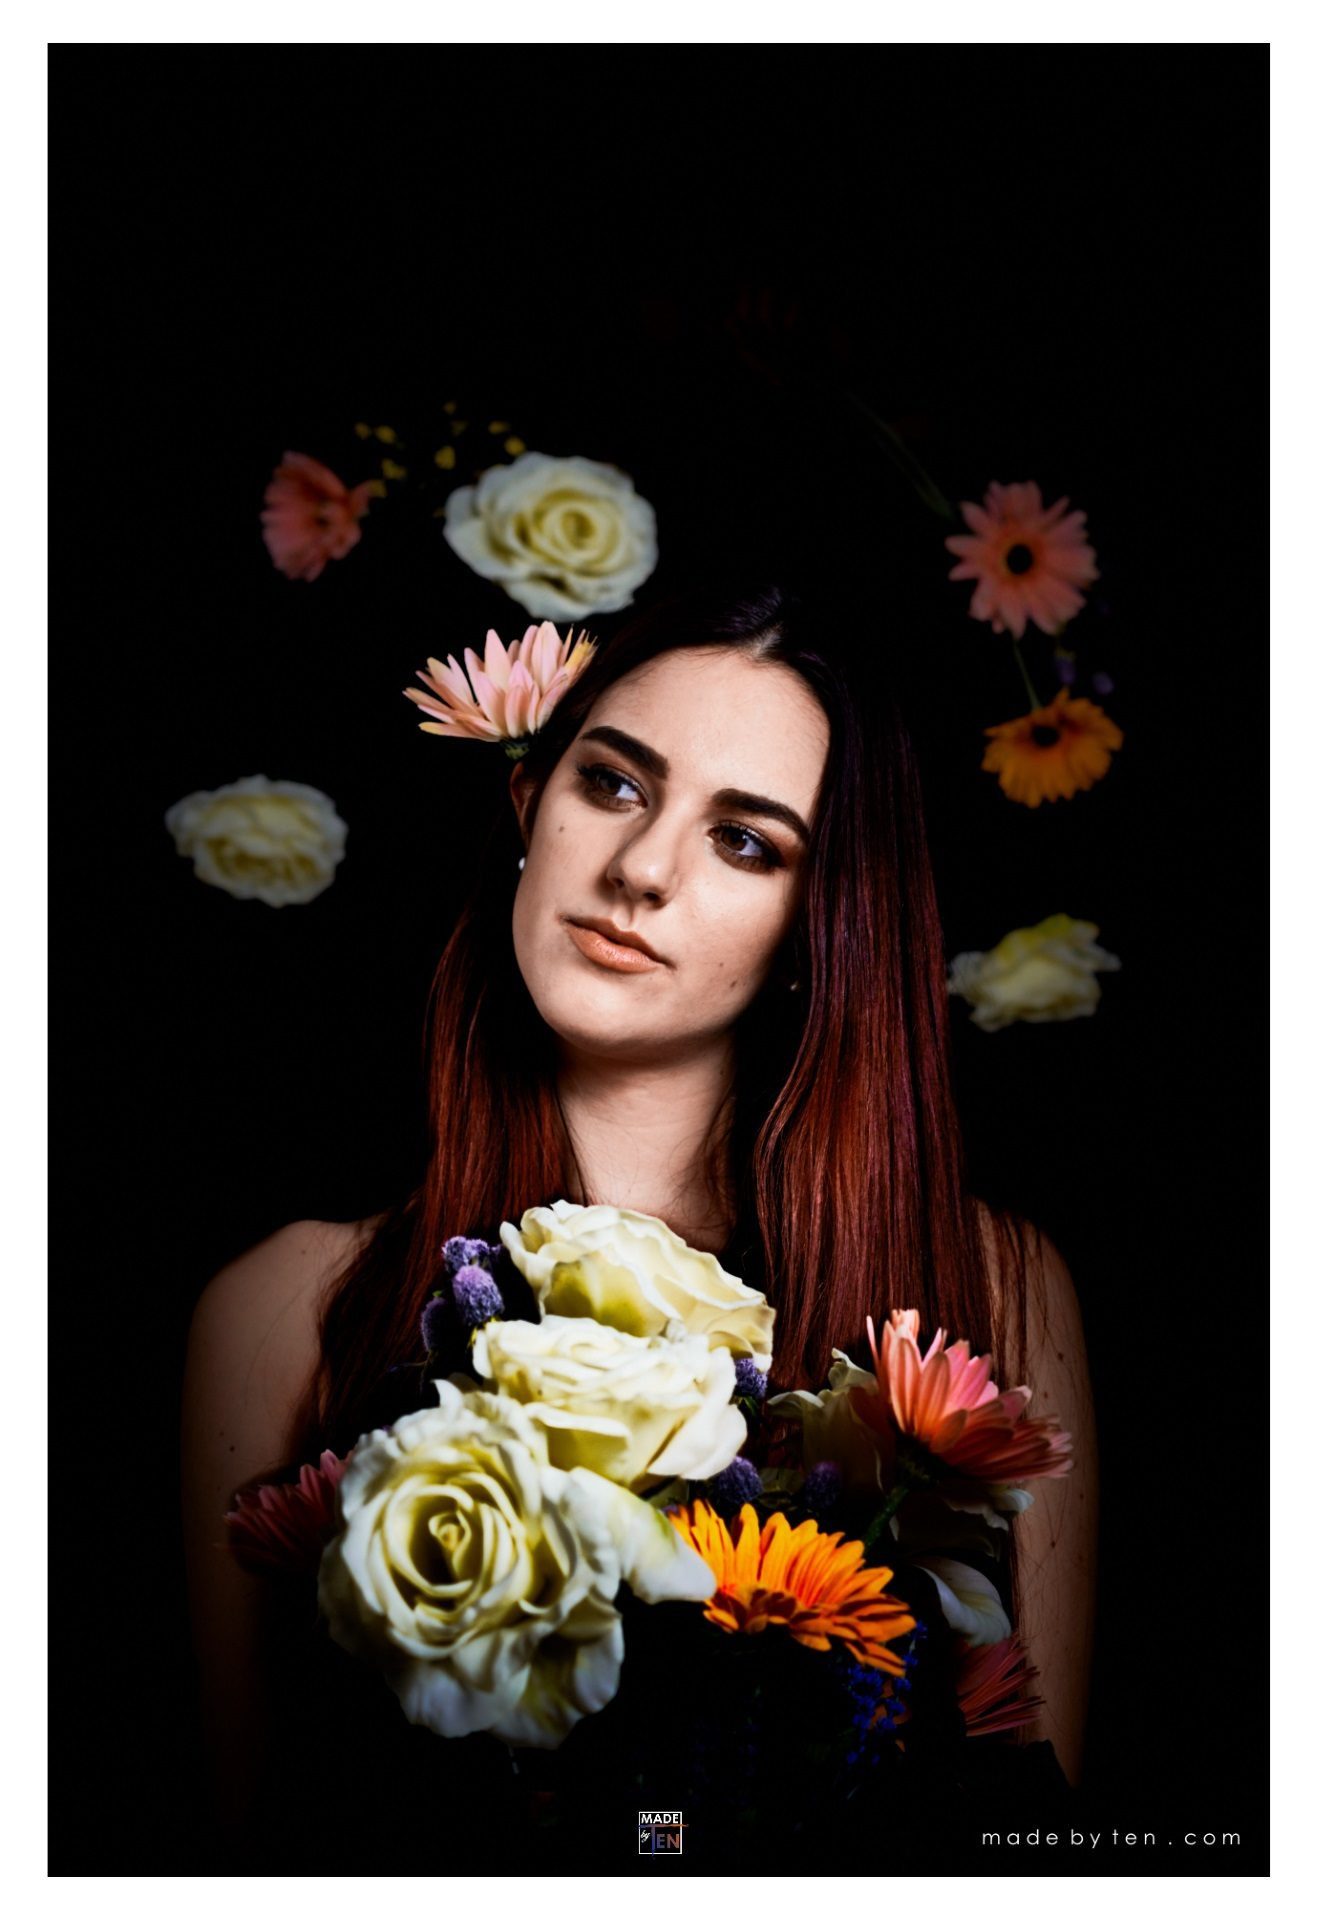 Made-by-Ten-Modern-Creative-Fine-Art-Portrait-Photography-GTA-Women-Toronto-Flower-Painting-1